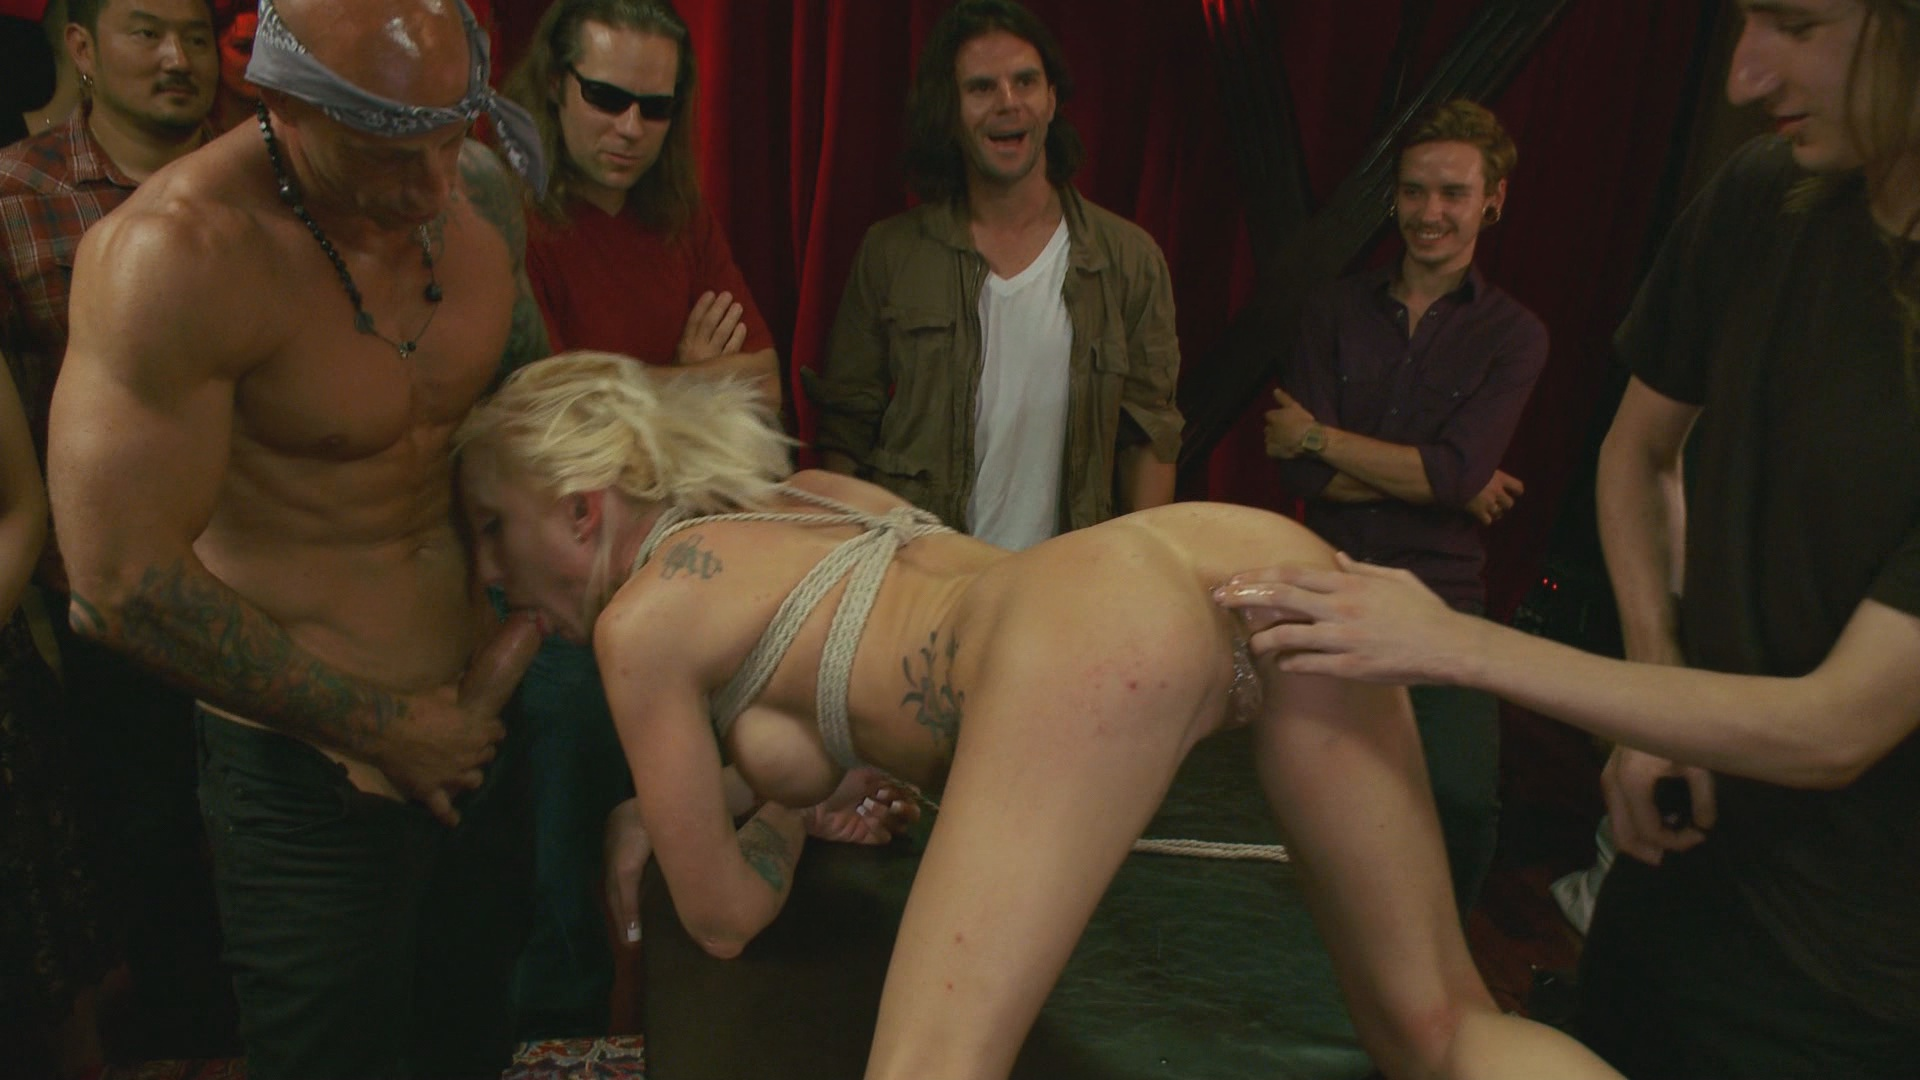 Public Disgrace: Lea Lexis Takes Control Of The Hole, Filthy Spectacle Of Disgrace Xvideos